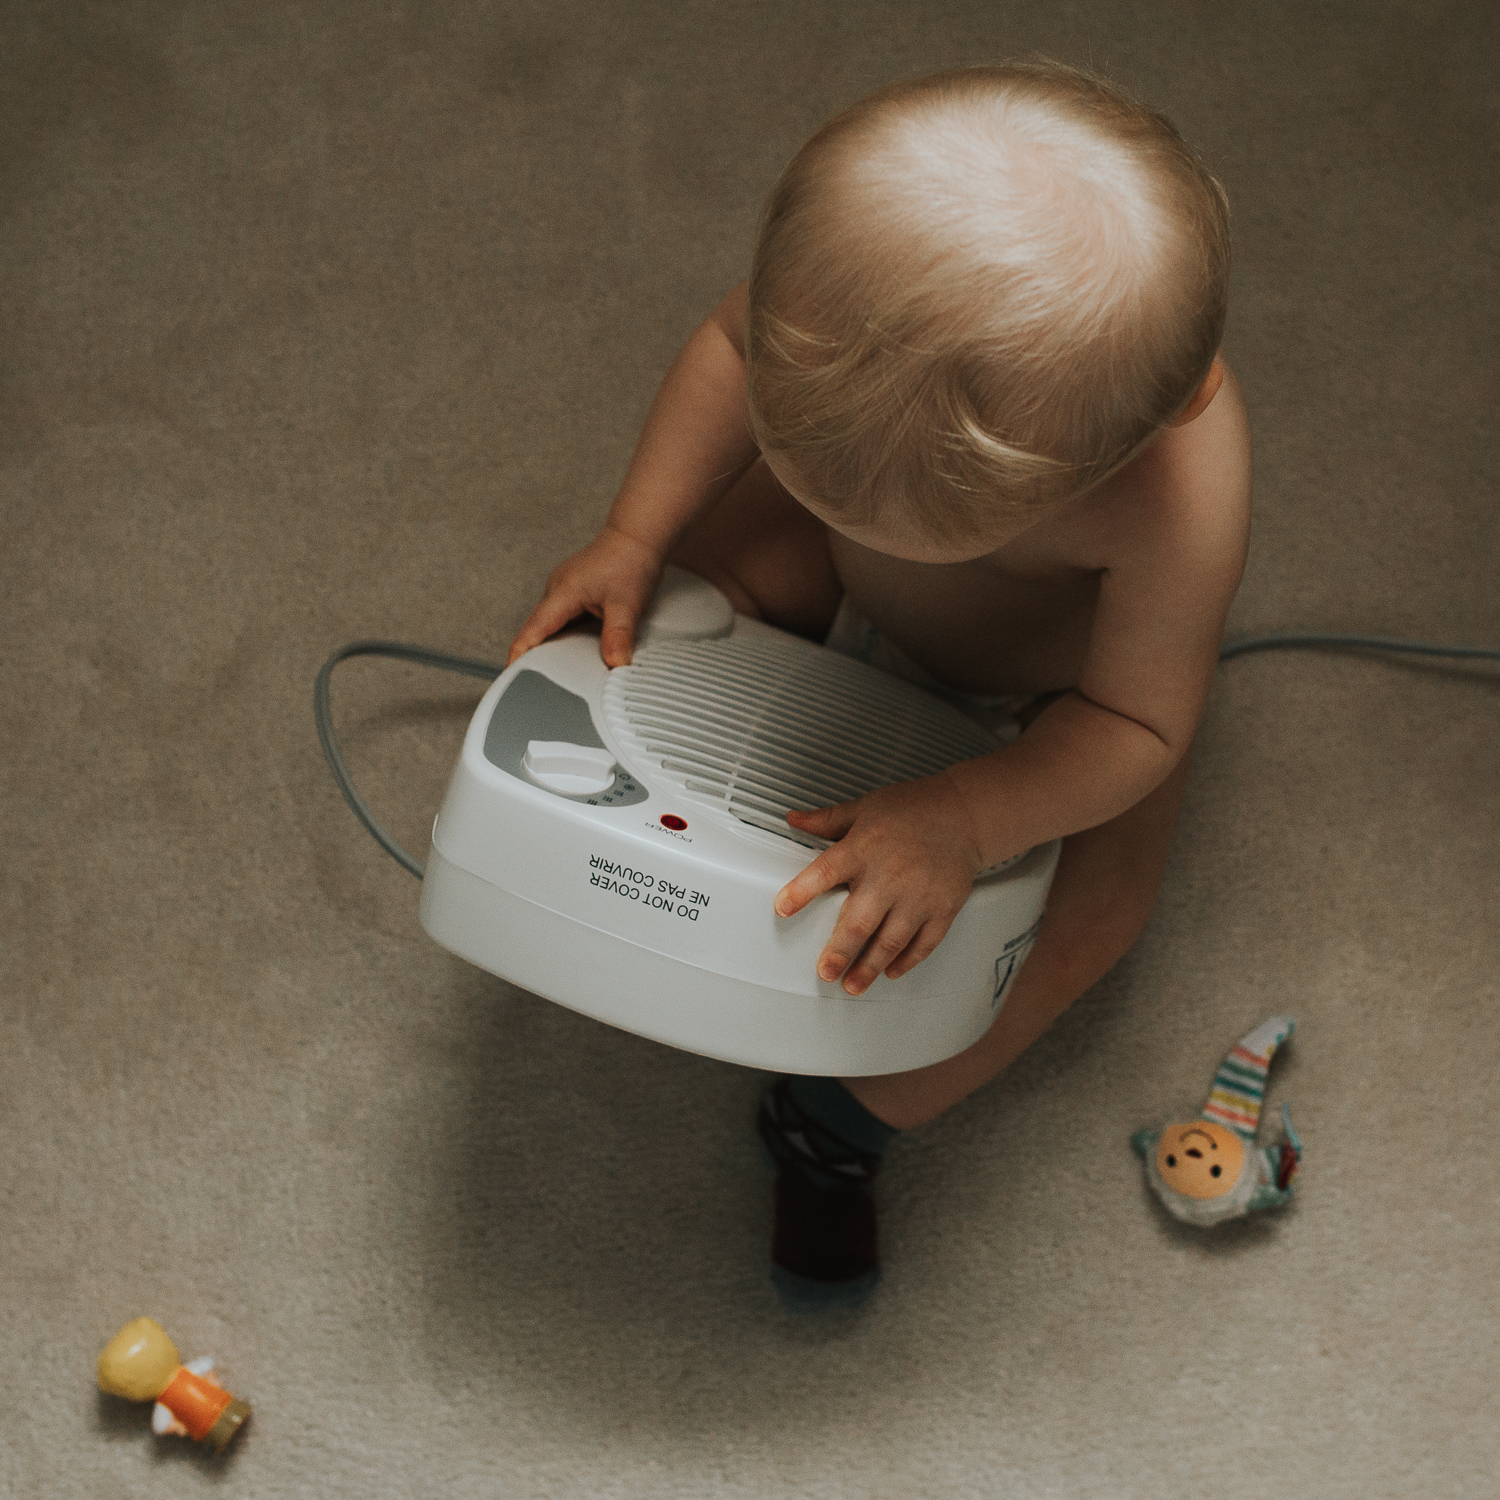 1 year old toddler boy sitting on floor playing with fan - Newmarket child photograph